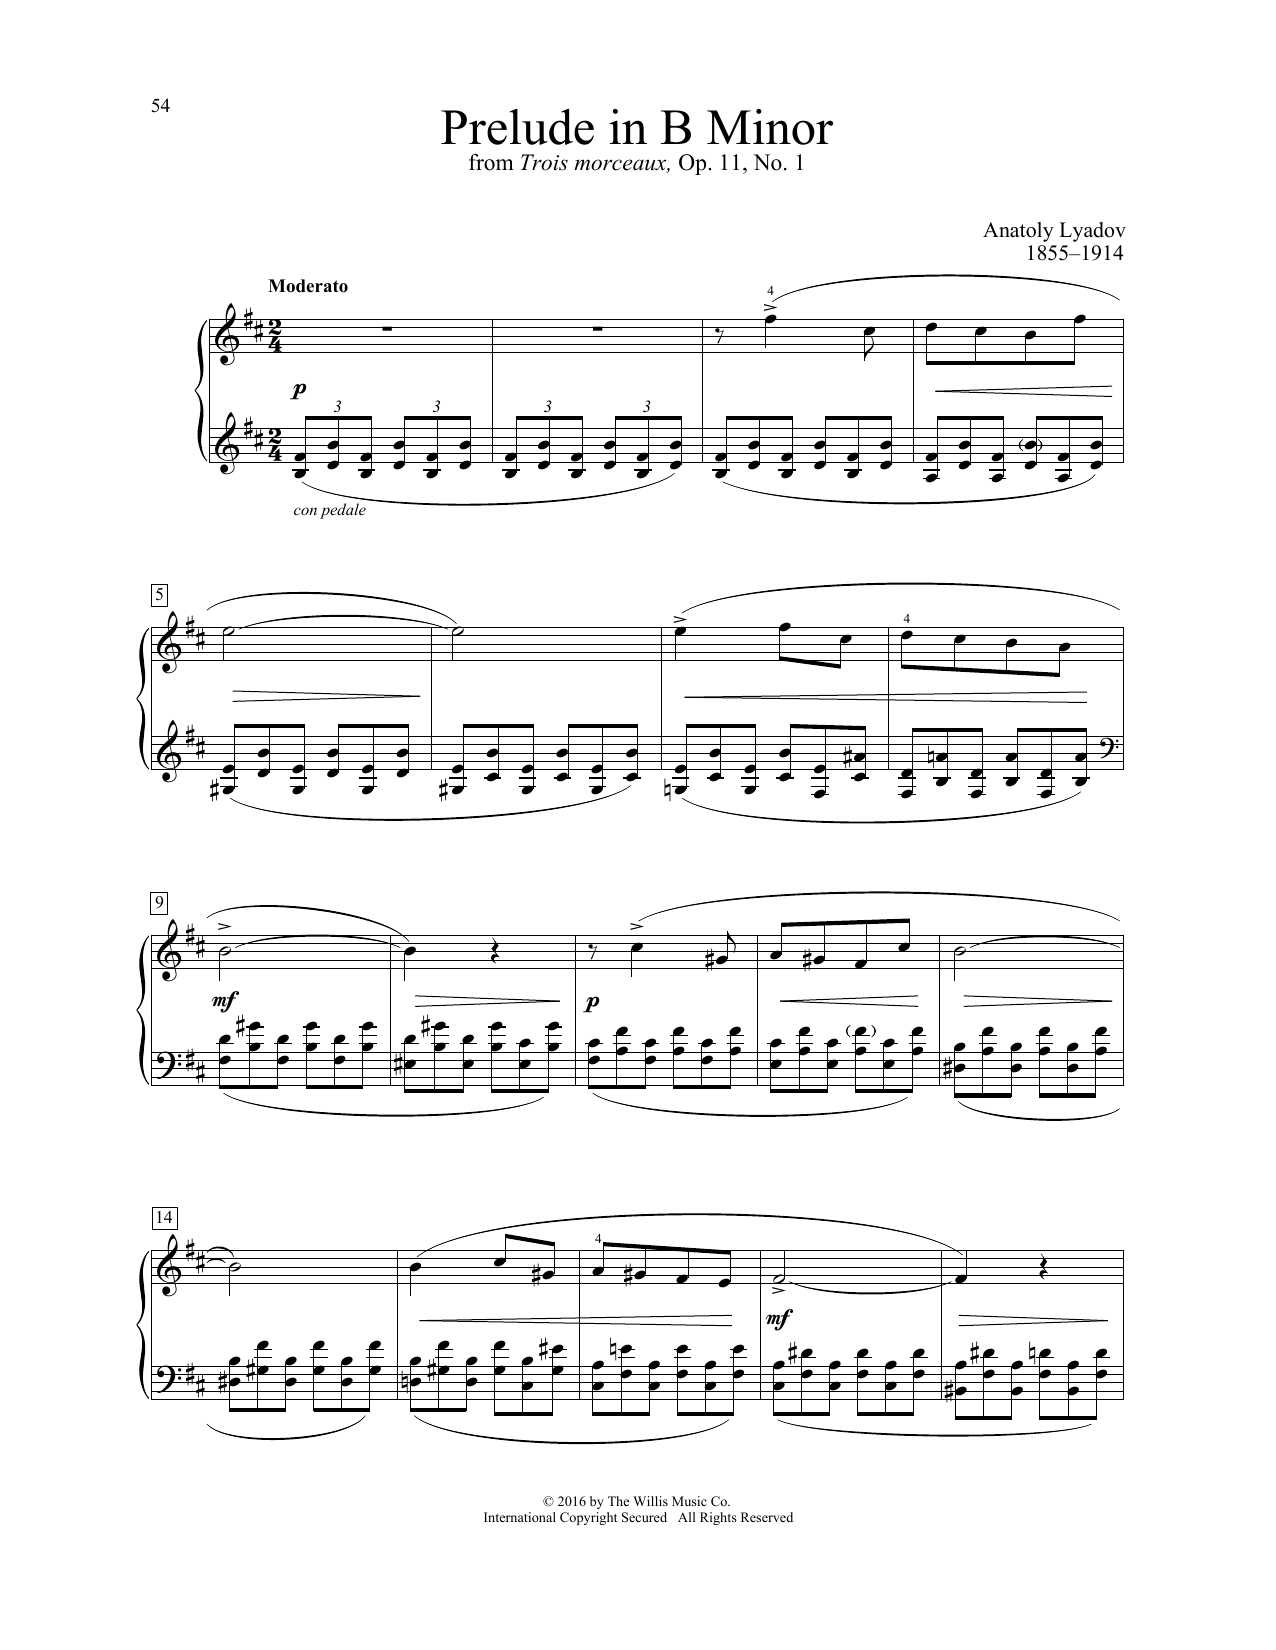 Anatoly Lyadov Prelude In B Minor sheet music notes and chords